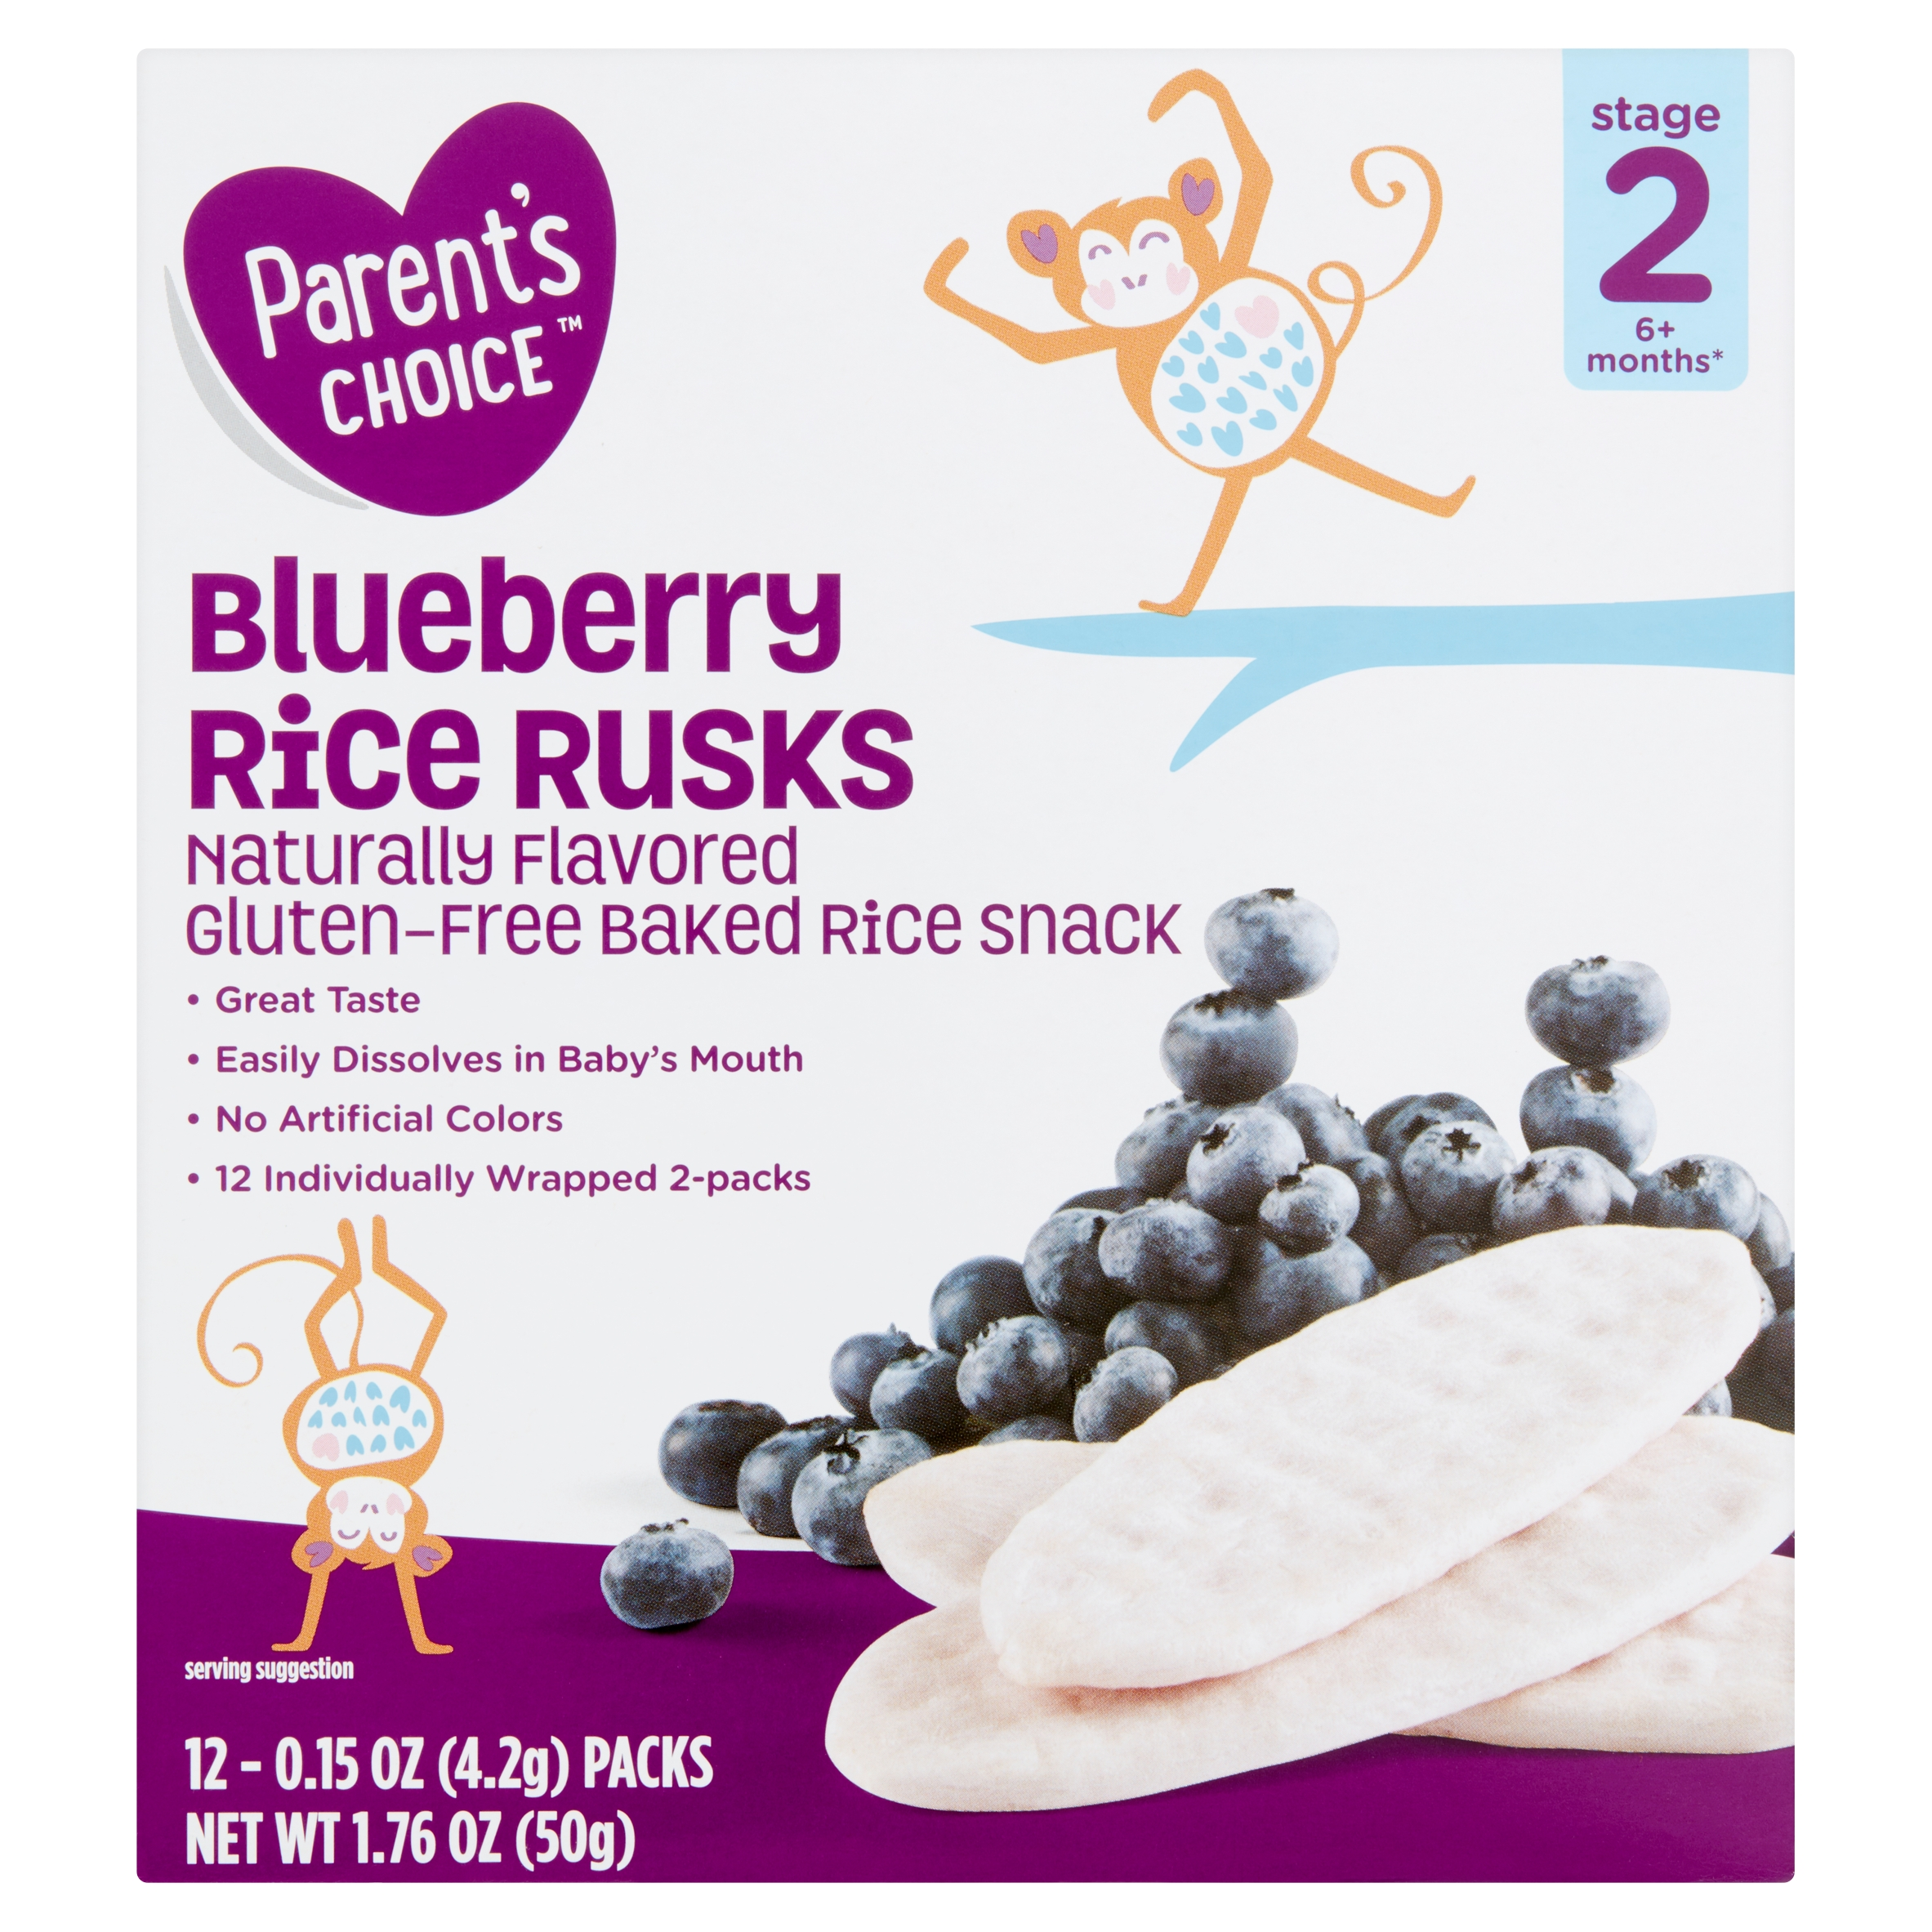 Parent's Choice Rice Rusks, Blueberry, Stage 2, 1.76 oz